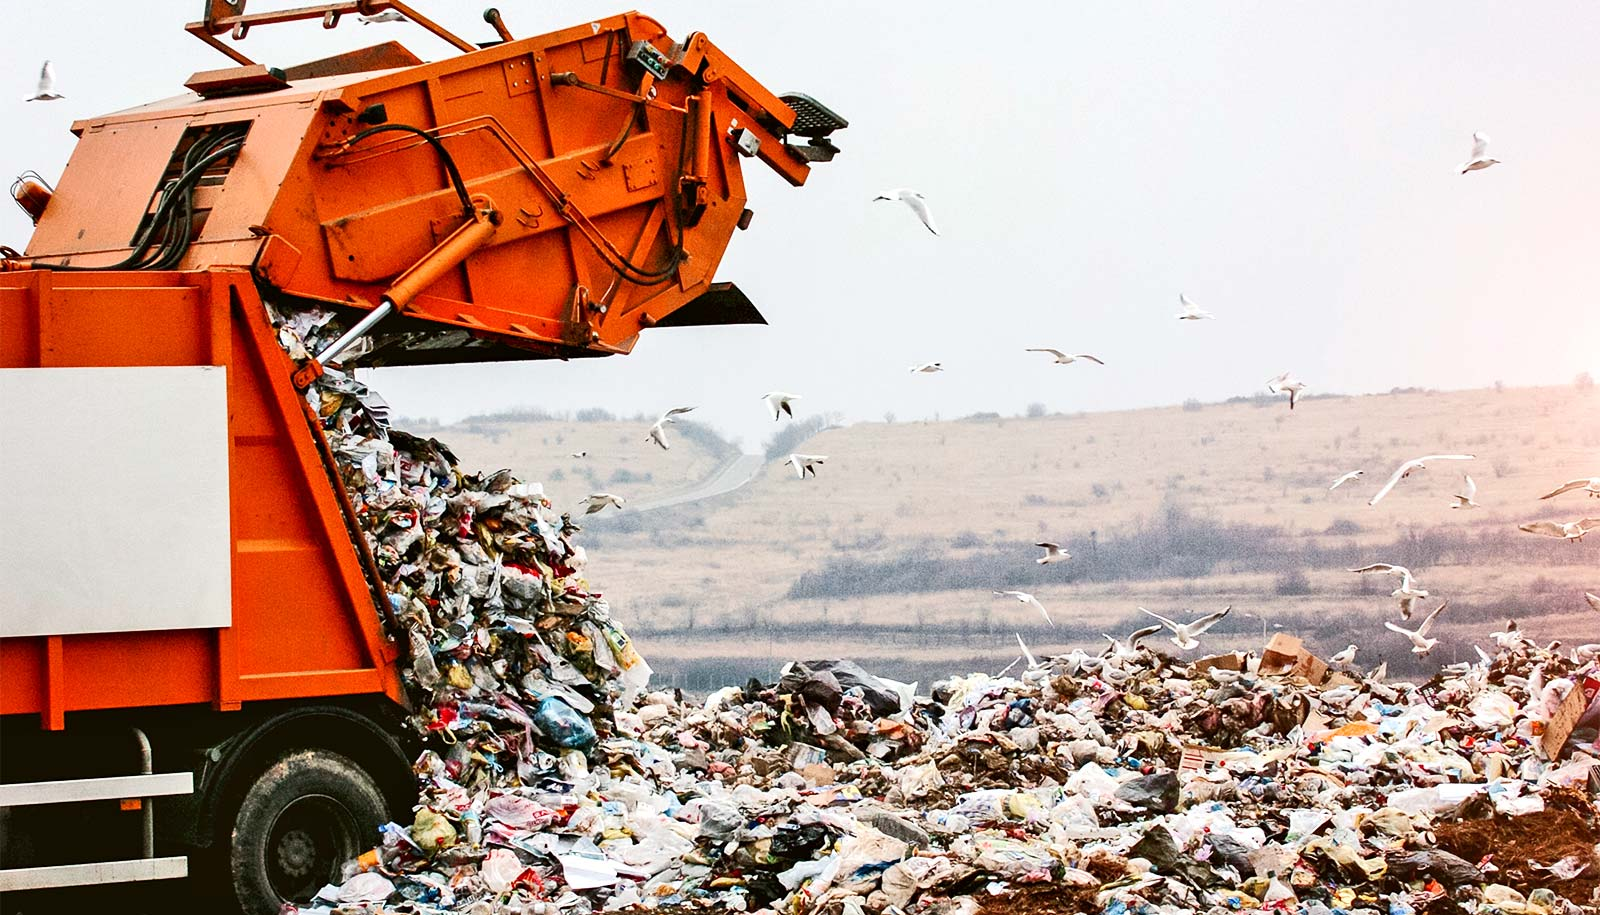 Supercharged trash gas could produce more green energy